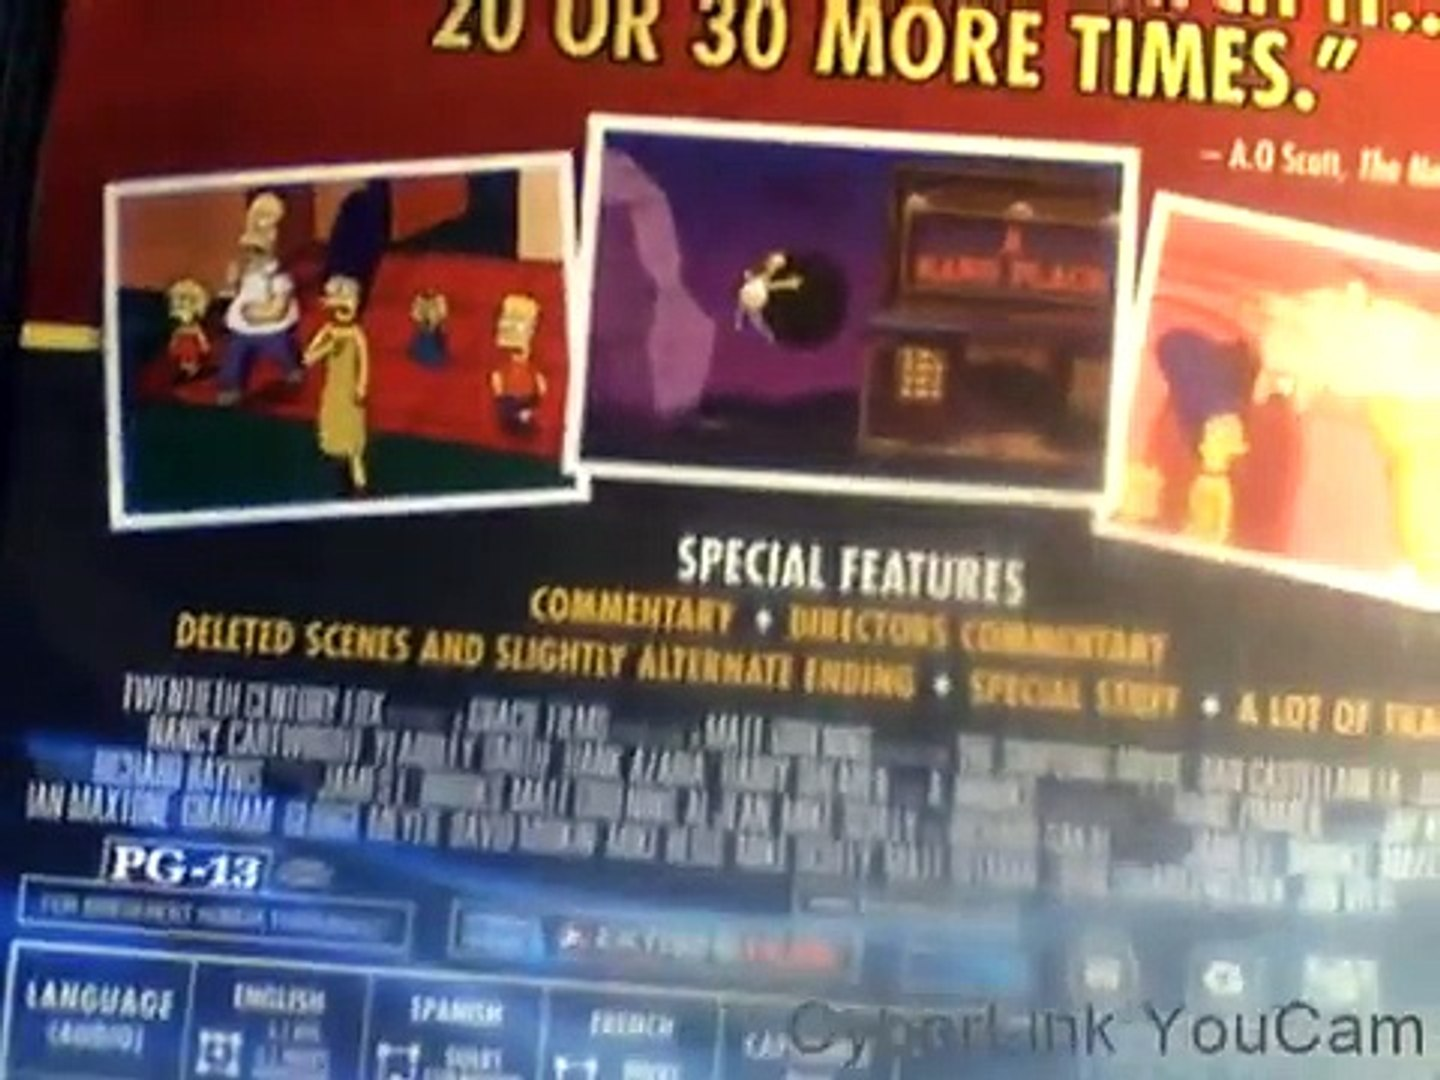 The Simpsons Movie And Family Guy The Freakin Sweet Collection Dvds Unboxing Video Dailymotion